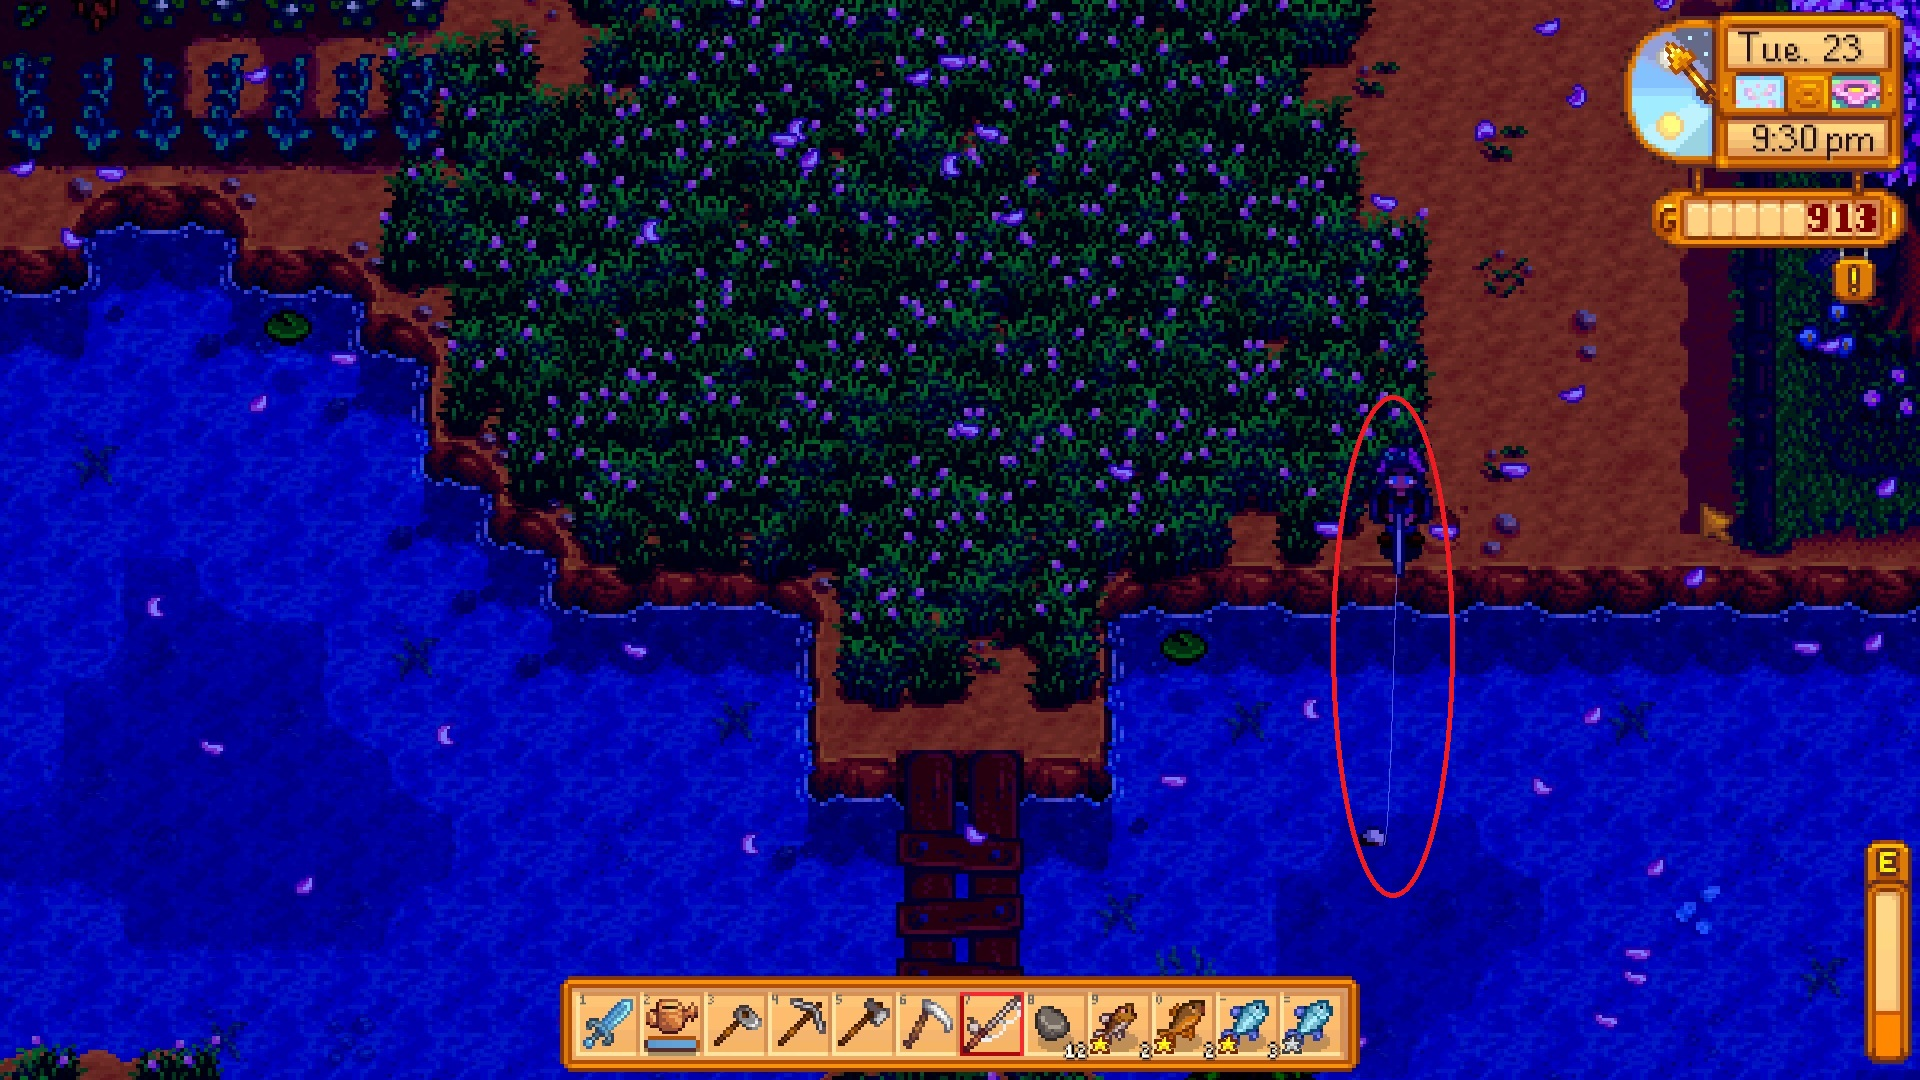 Fishing in Stardew Valley: guide, tips, locations | Stardew